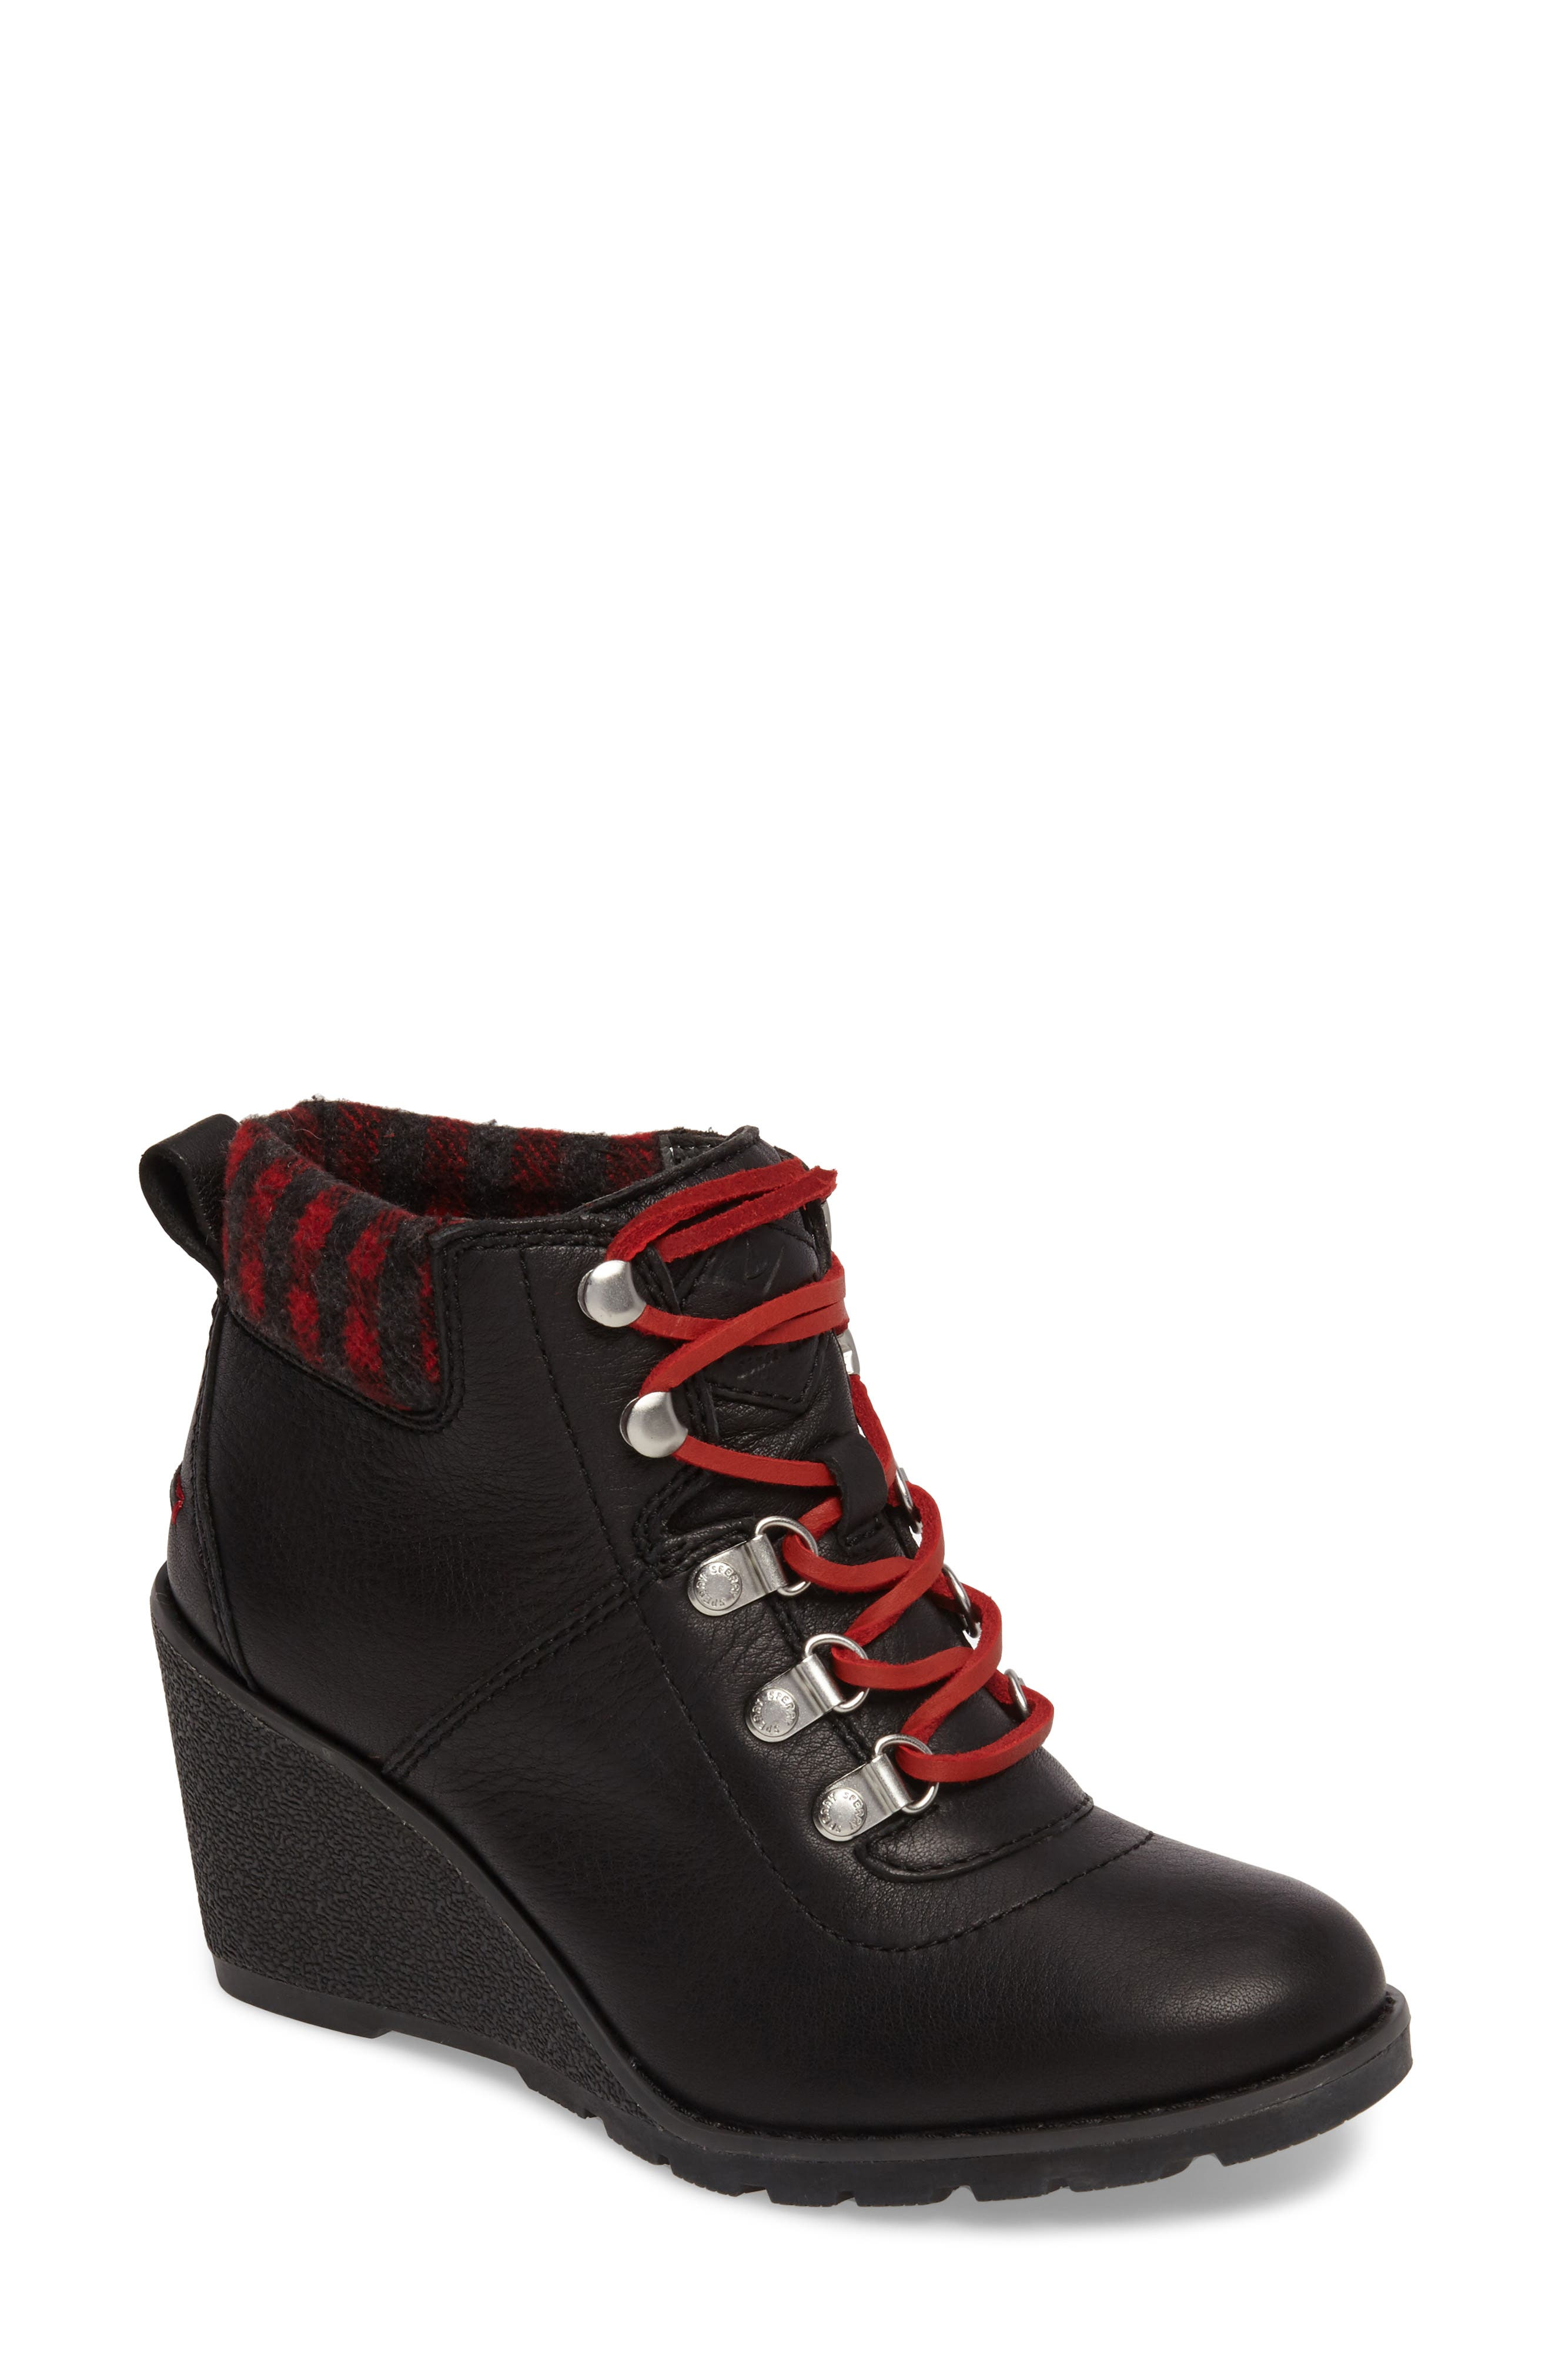 SPERRY Top-Sider<sup>®</sup> Celeste Bliss Wedge Boot